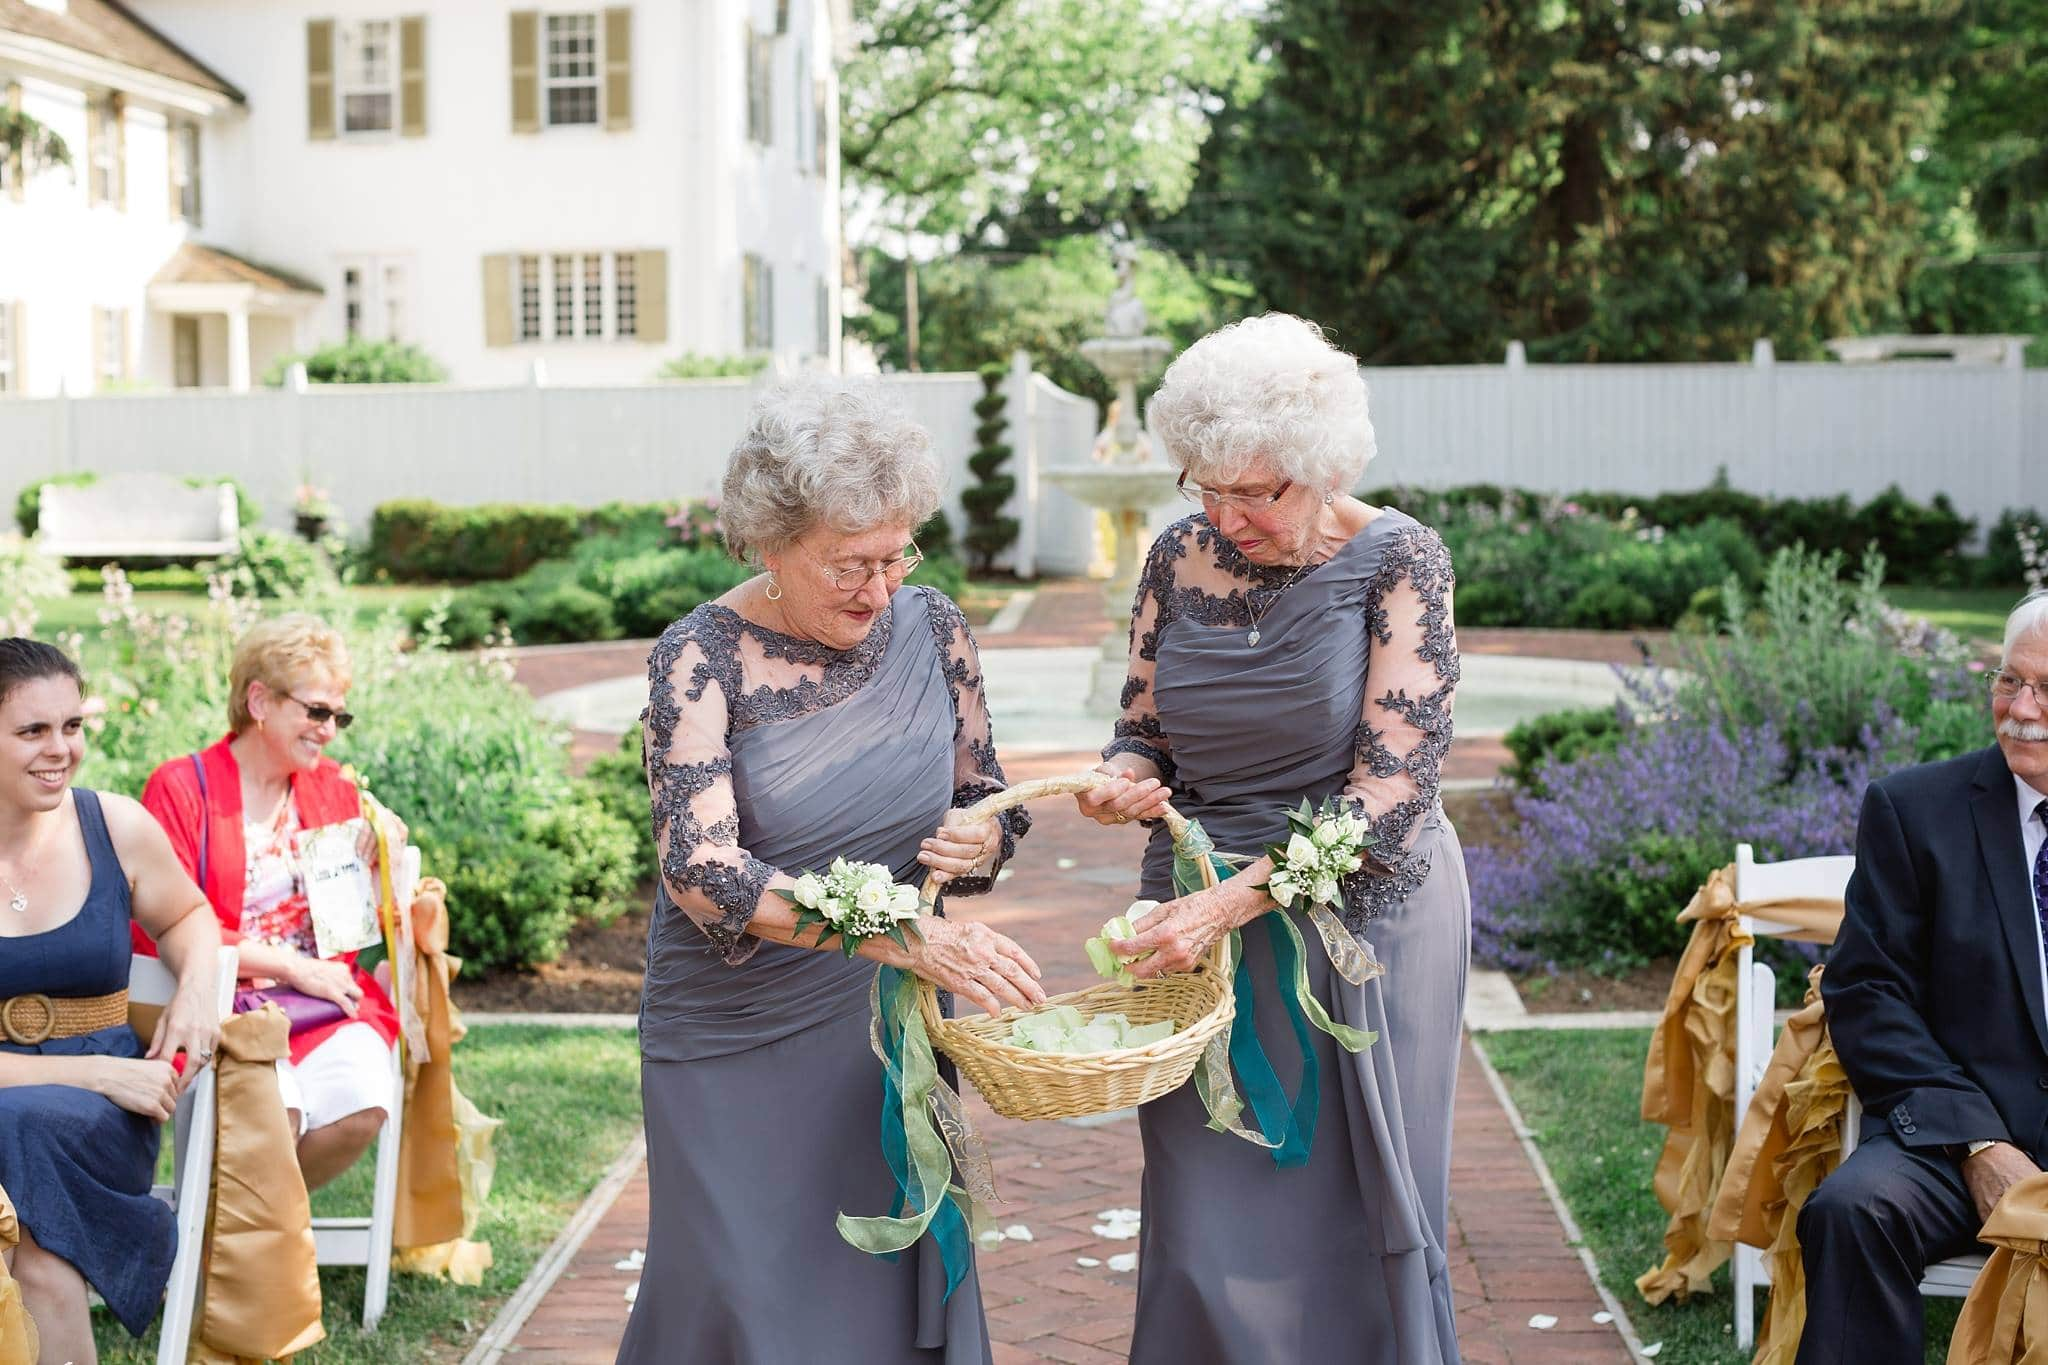 Bride & Groom's Grandmothers Team Up As Flower Girls to Bring Special Meaning to Wedding.